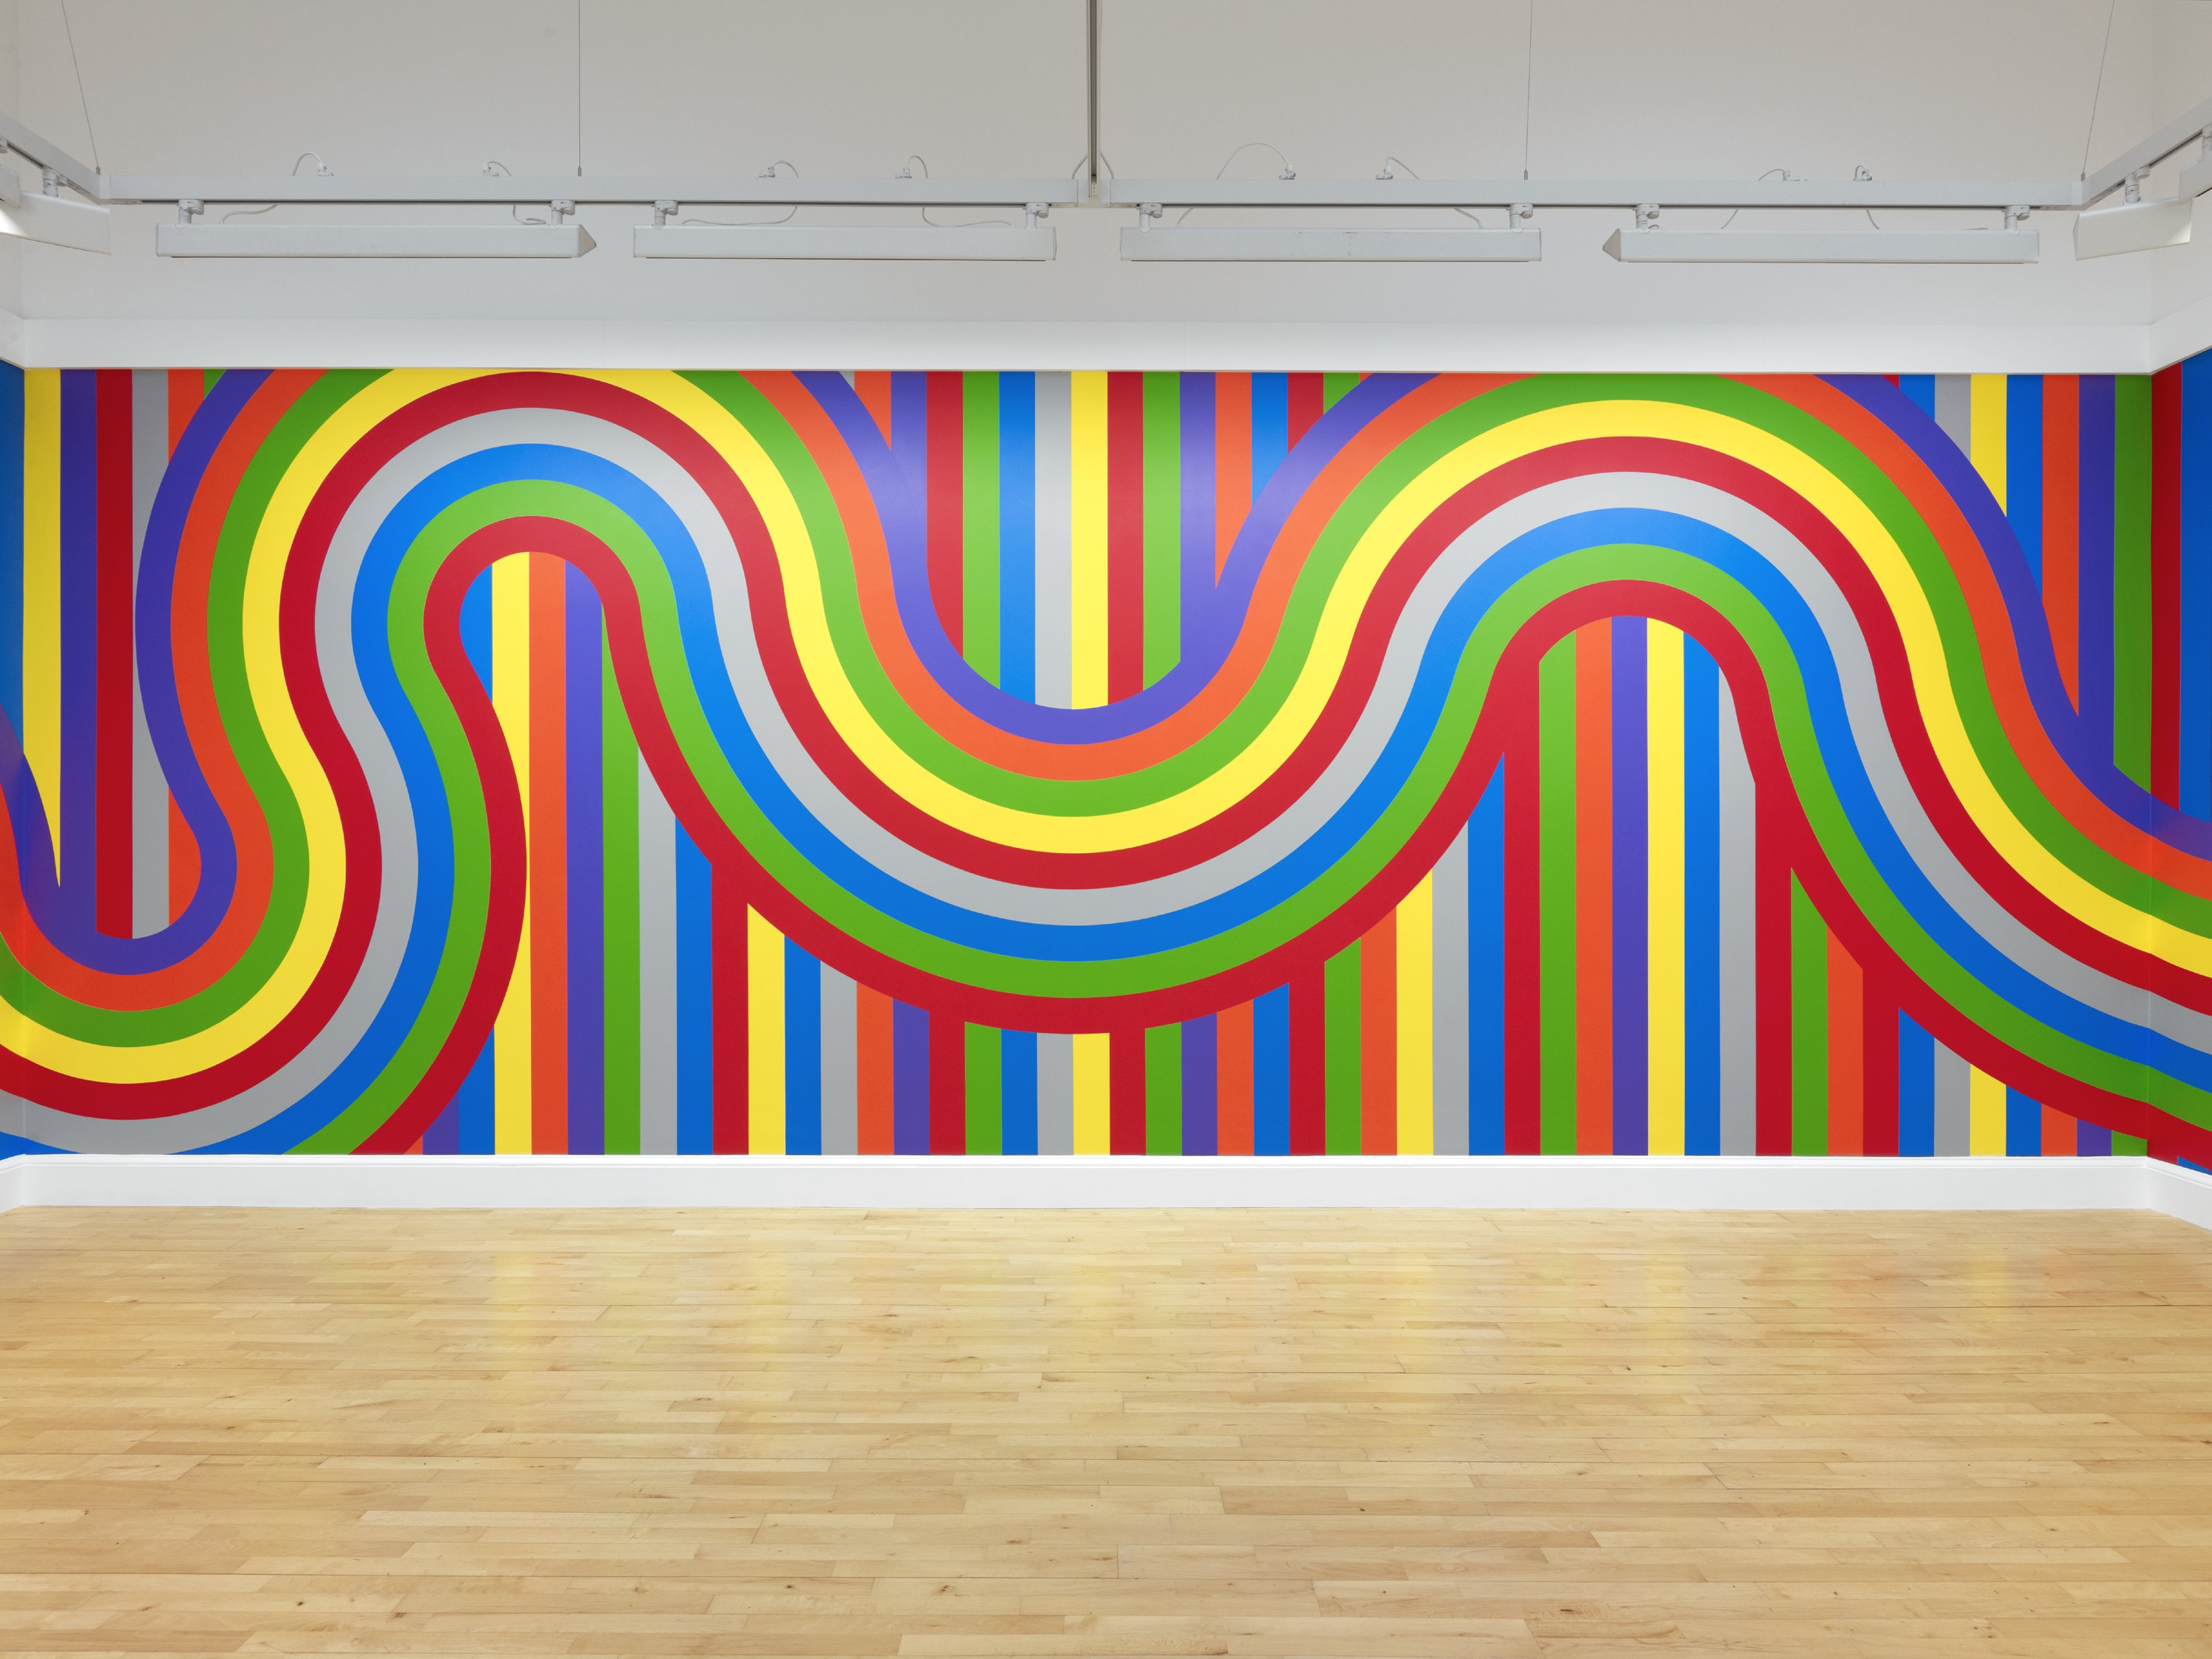 Sol lewitt 39 s influential drawings on walls around the world for Minimal art sol lewitt